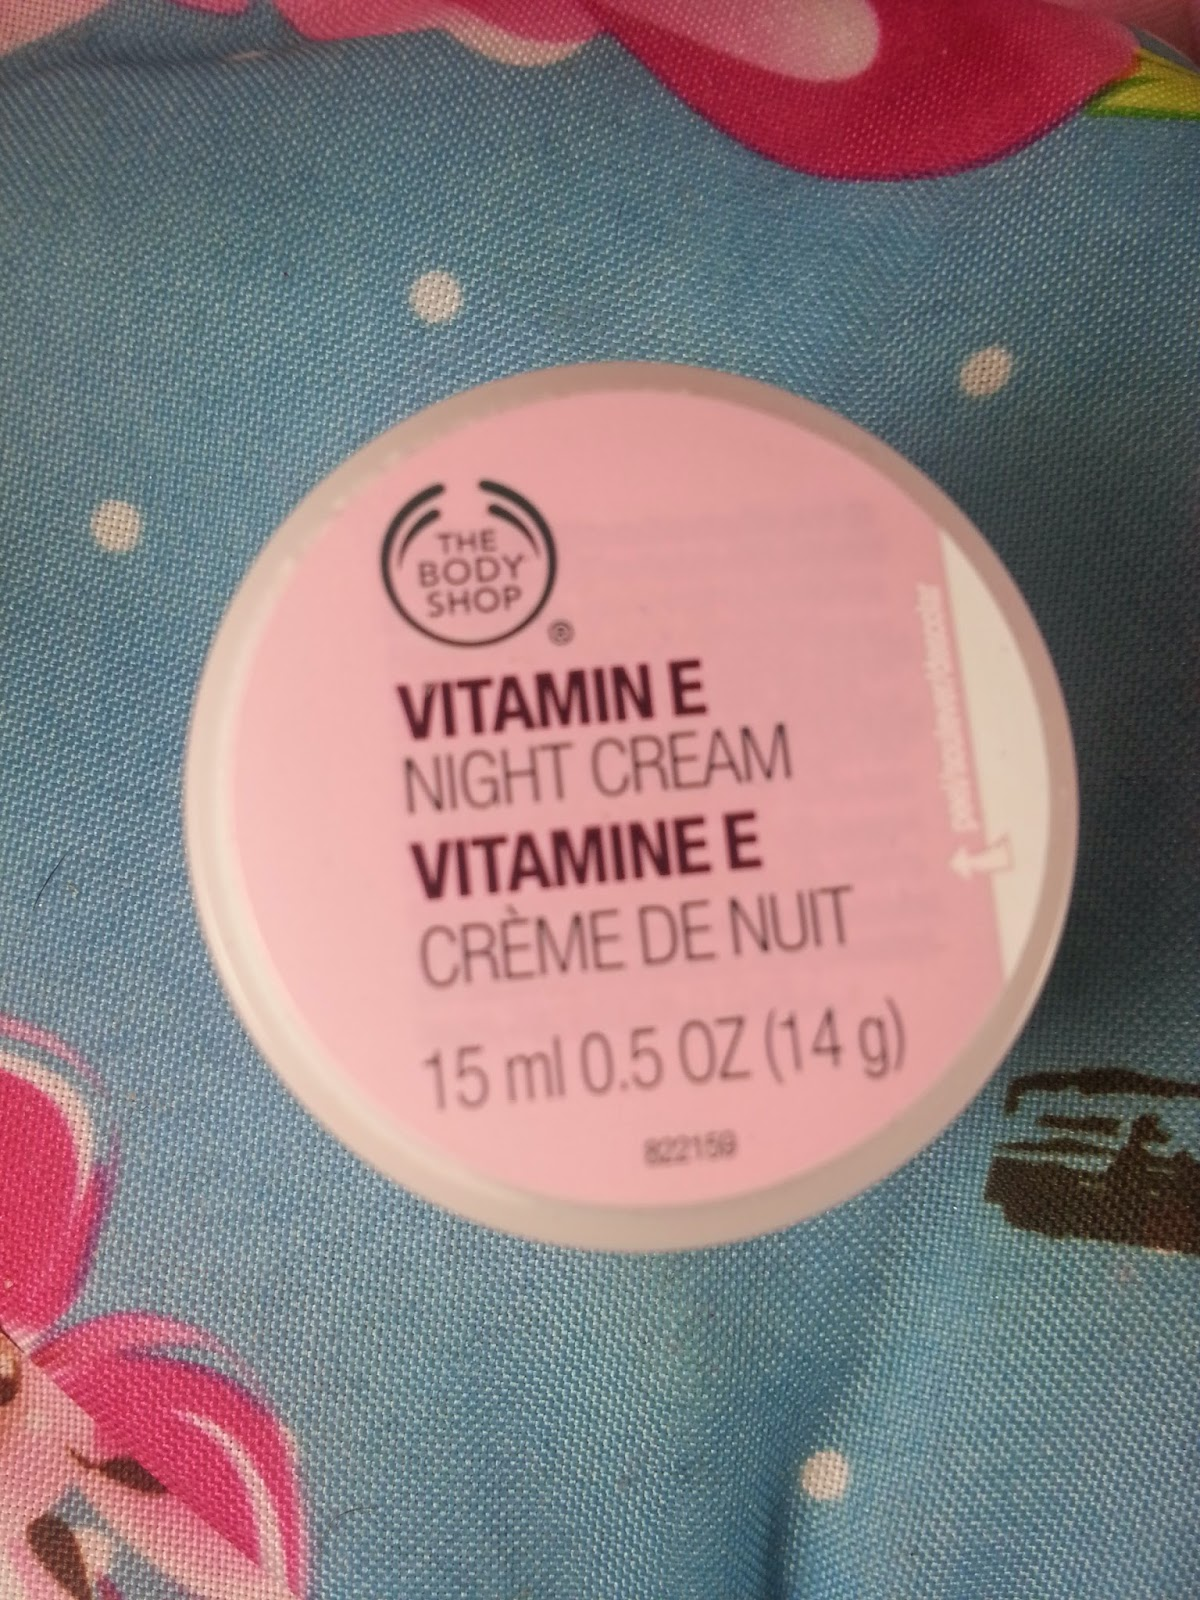 The Body Shop - Vitamin Nourishing Night Cream - www.annitschkasblog.de